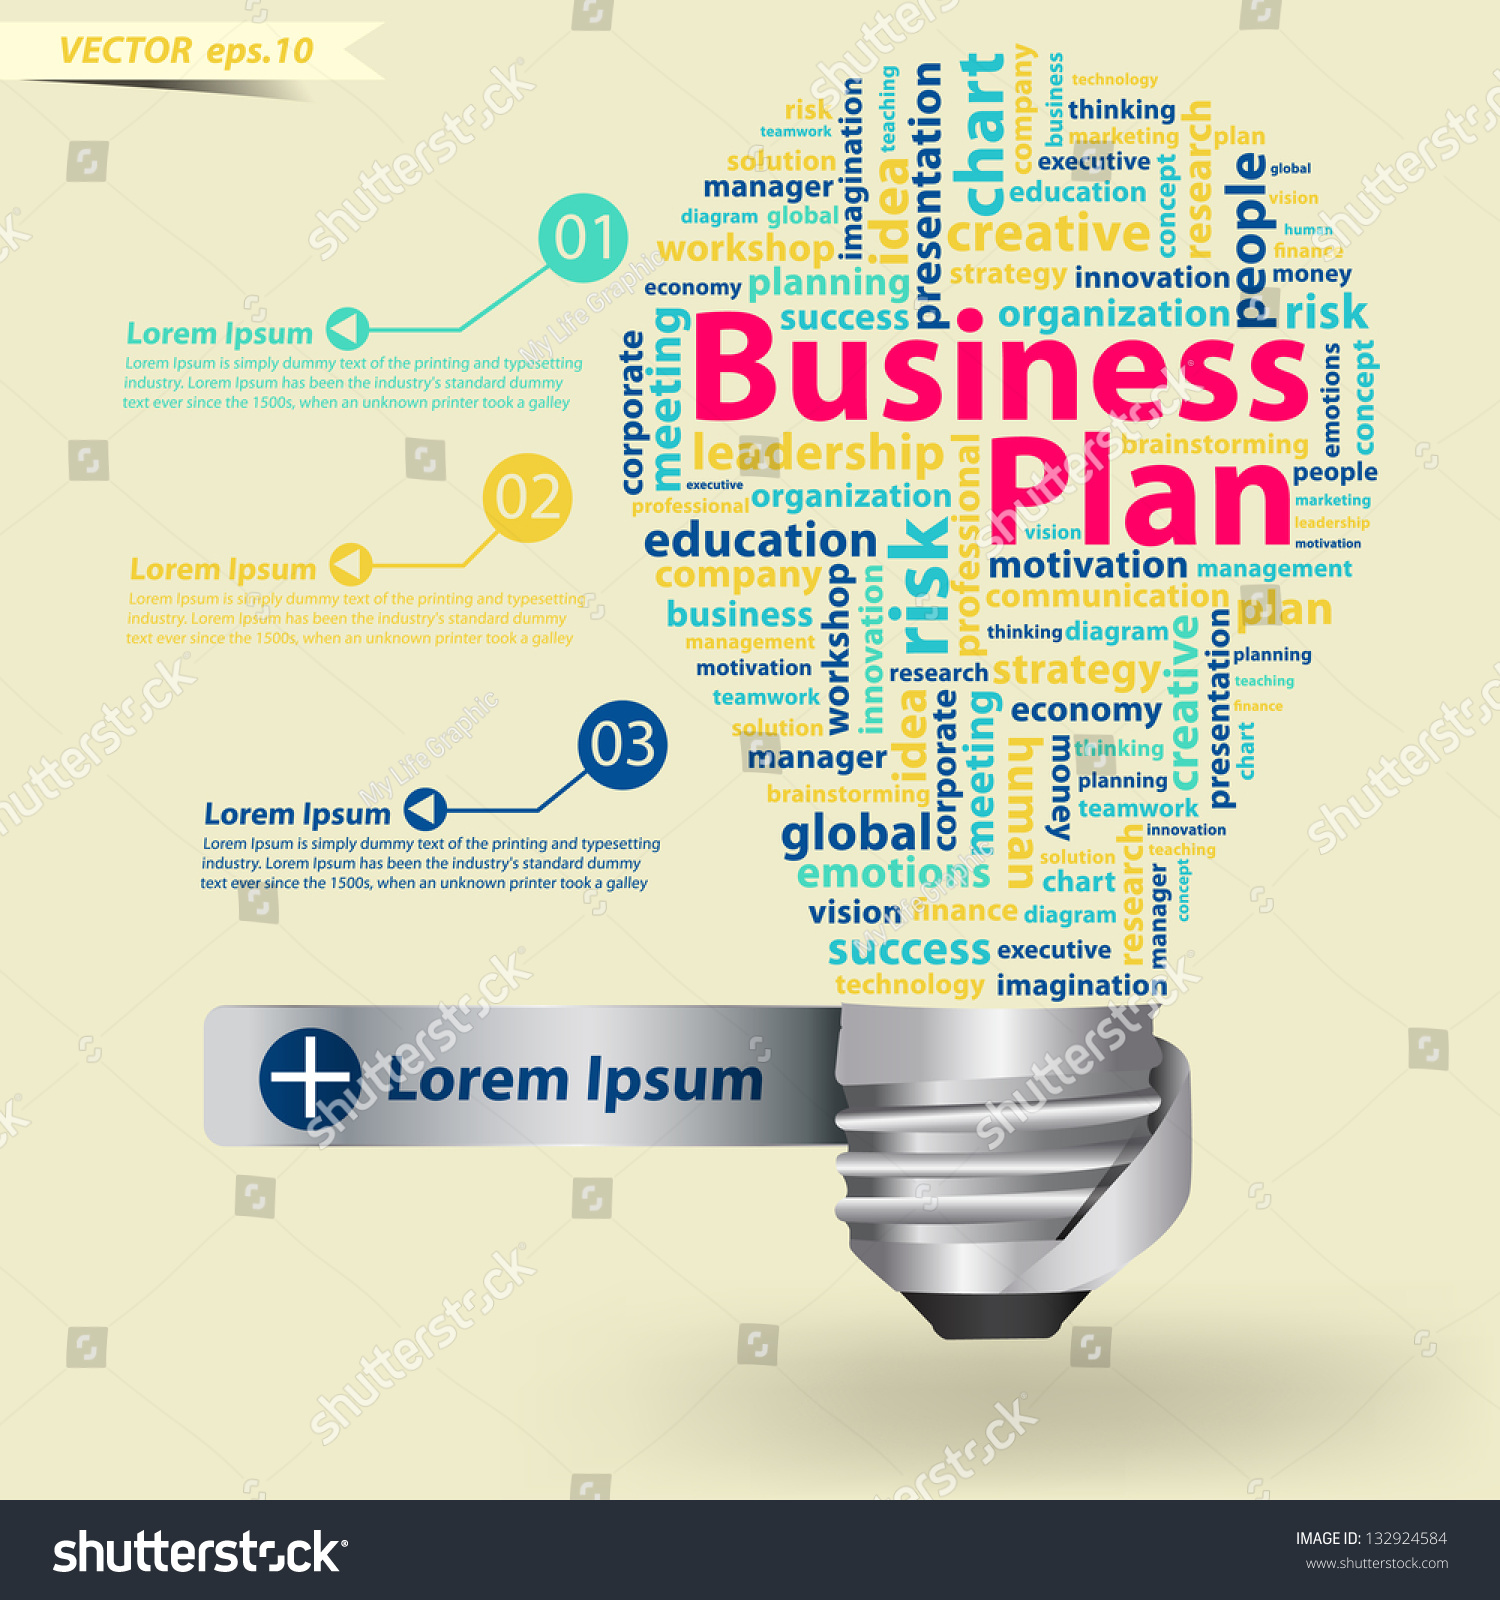 Concept of a business plan